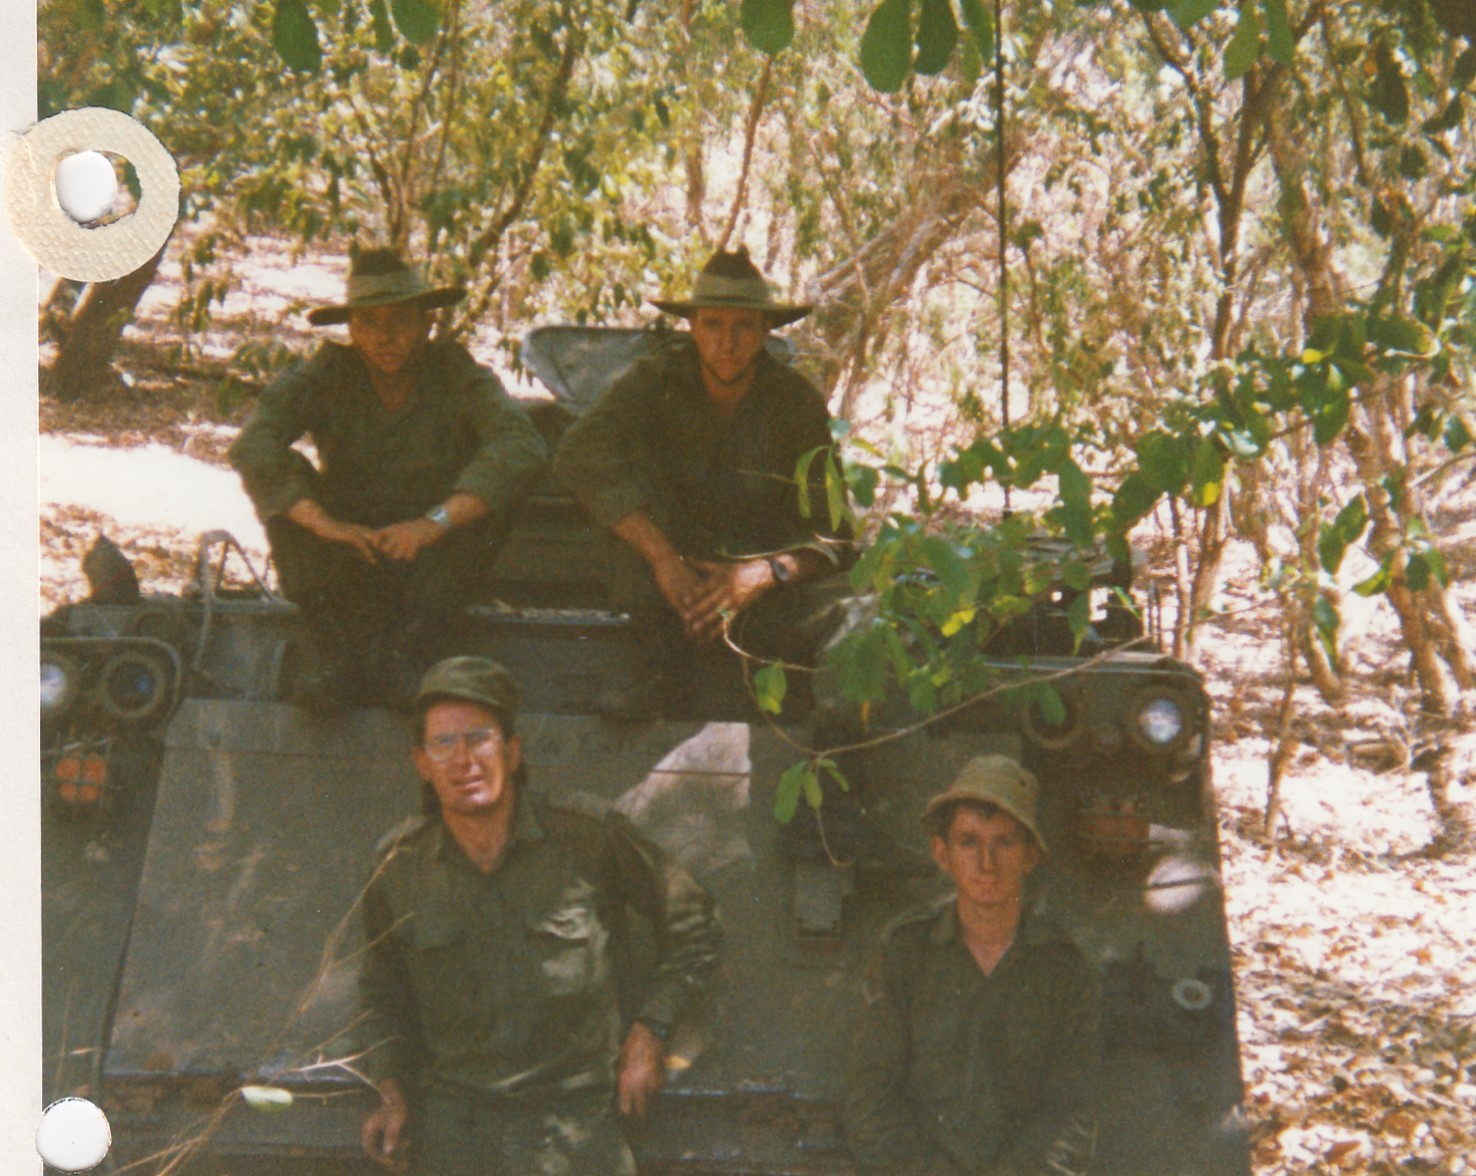 Captain Colin Carrington, 'A' Squadron 8th/13th Victorian Mounted Rifles, left front, with his patrol near Fergusson River, Northern Territory 1988.